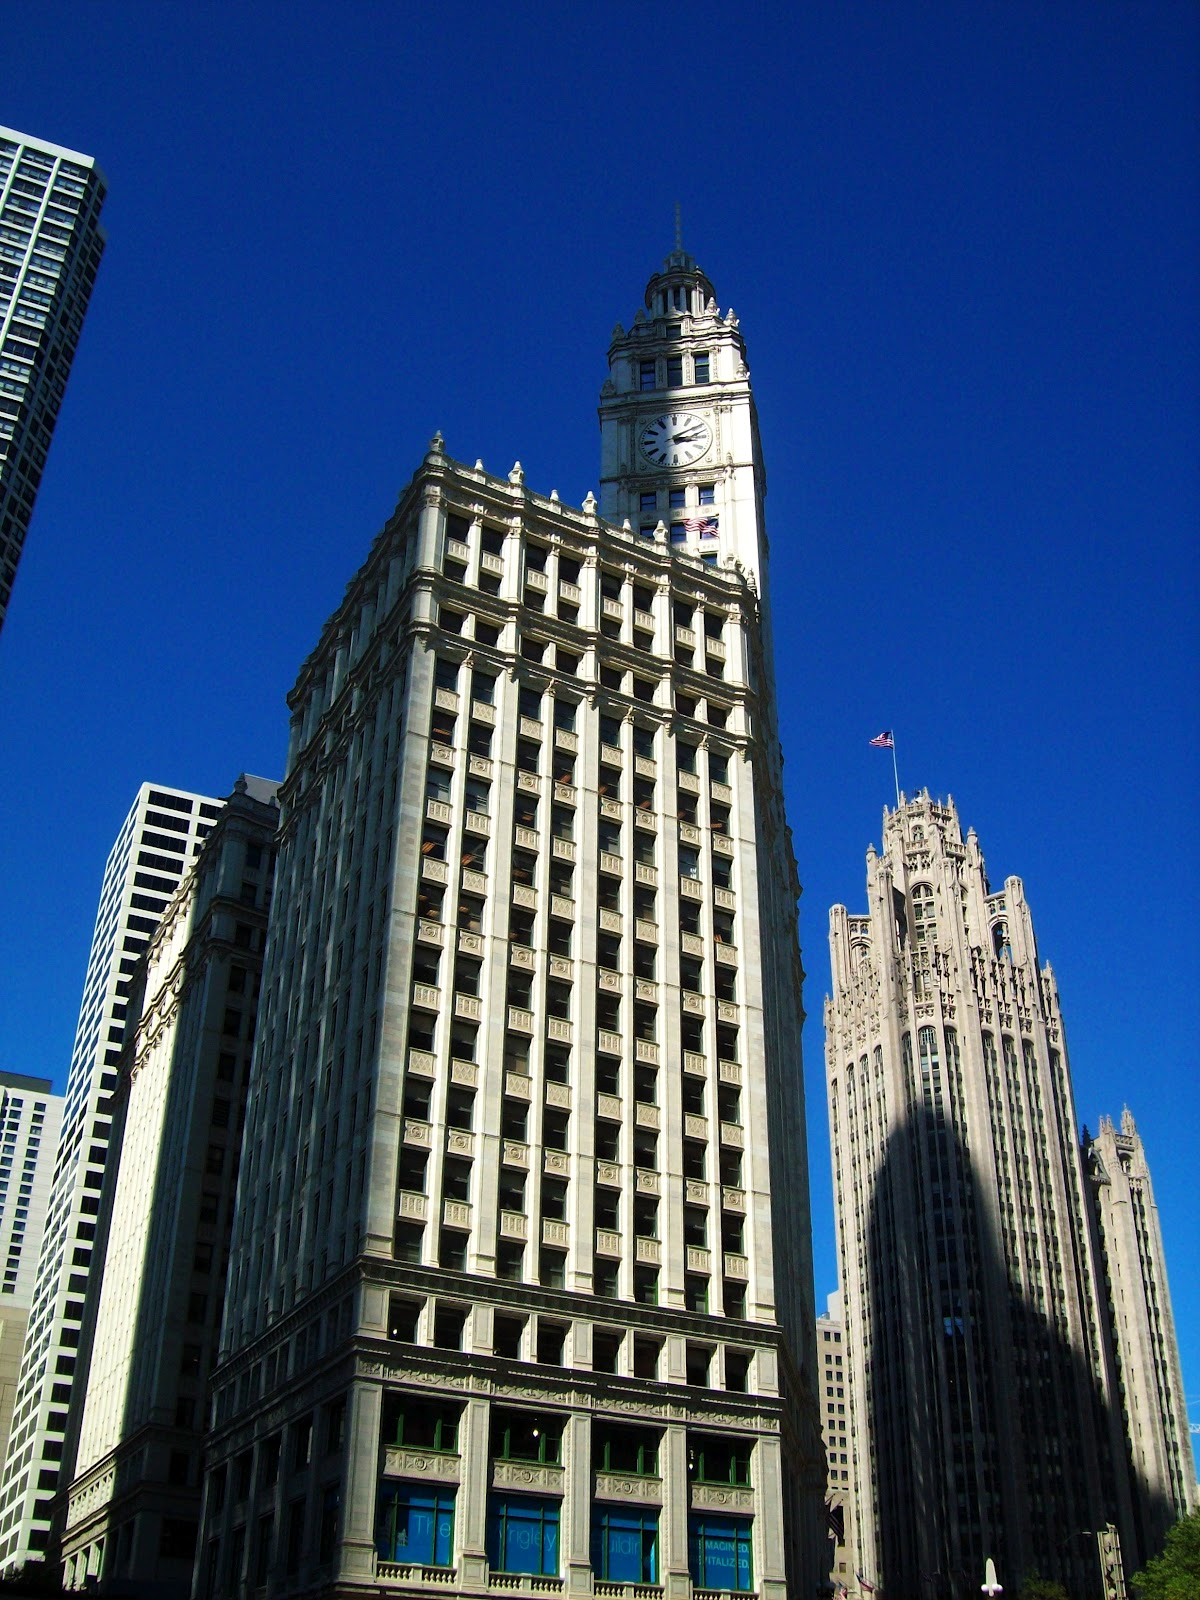 blue skies and 70 s beckoned we did an architectural tour along lake michigan and the chicago river following we had a lovely dinner outside at bubba